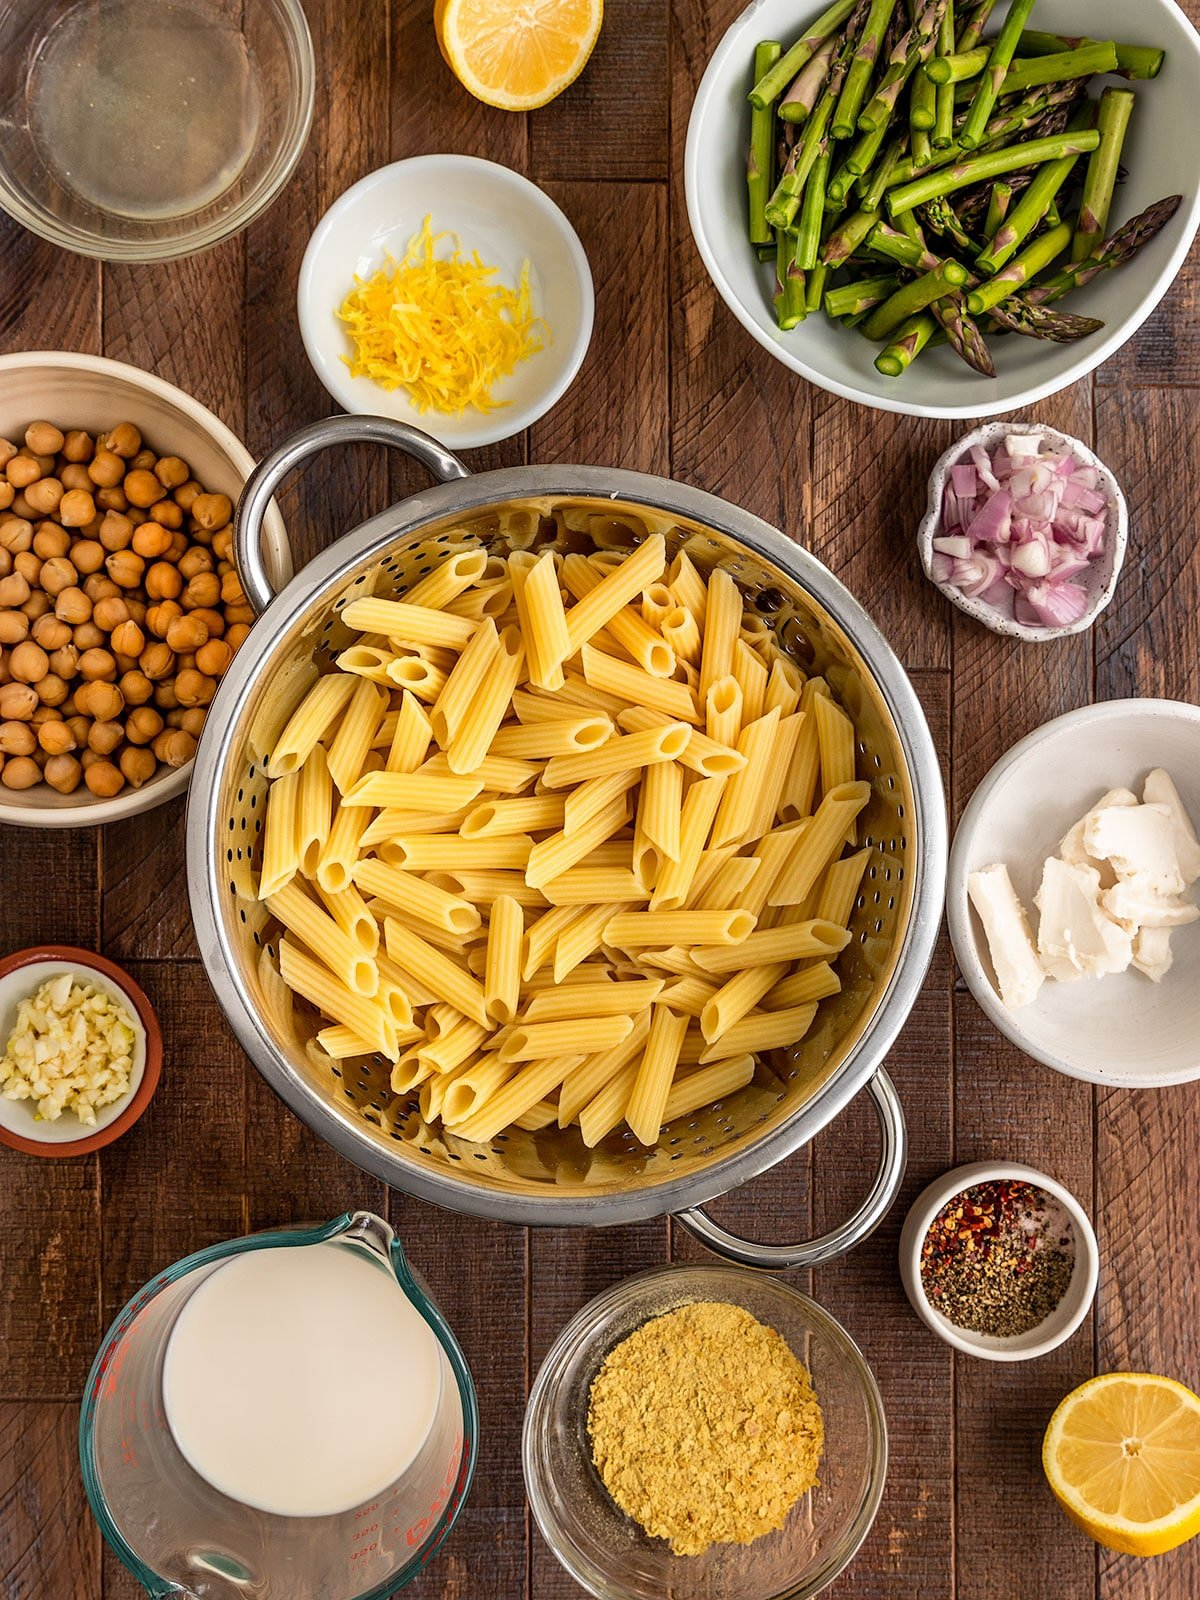 ingredients for penne pasta of chickpeas, garlic, lemon, asparagus, oat milk, nutritional yeast, spices, and butter